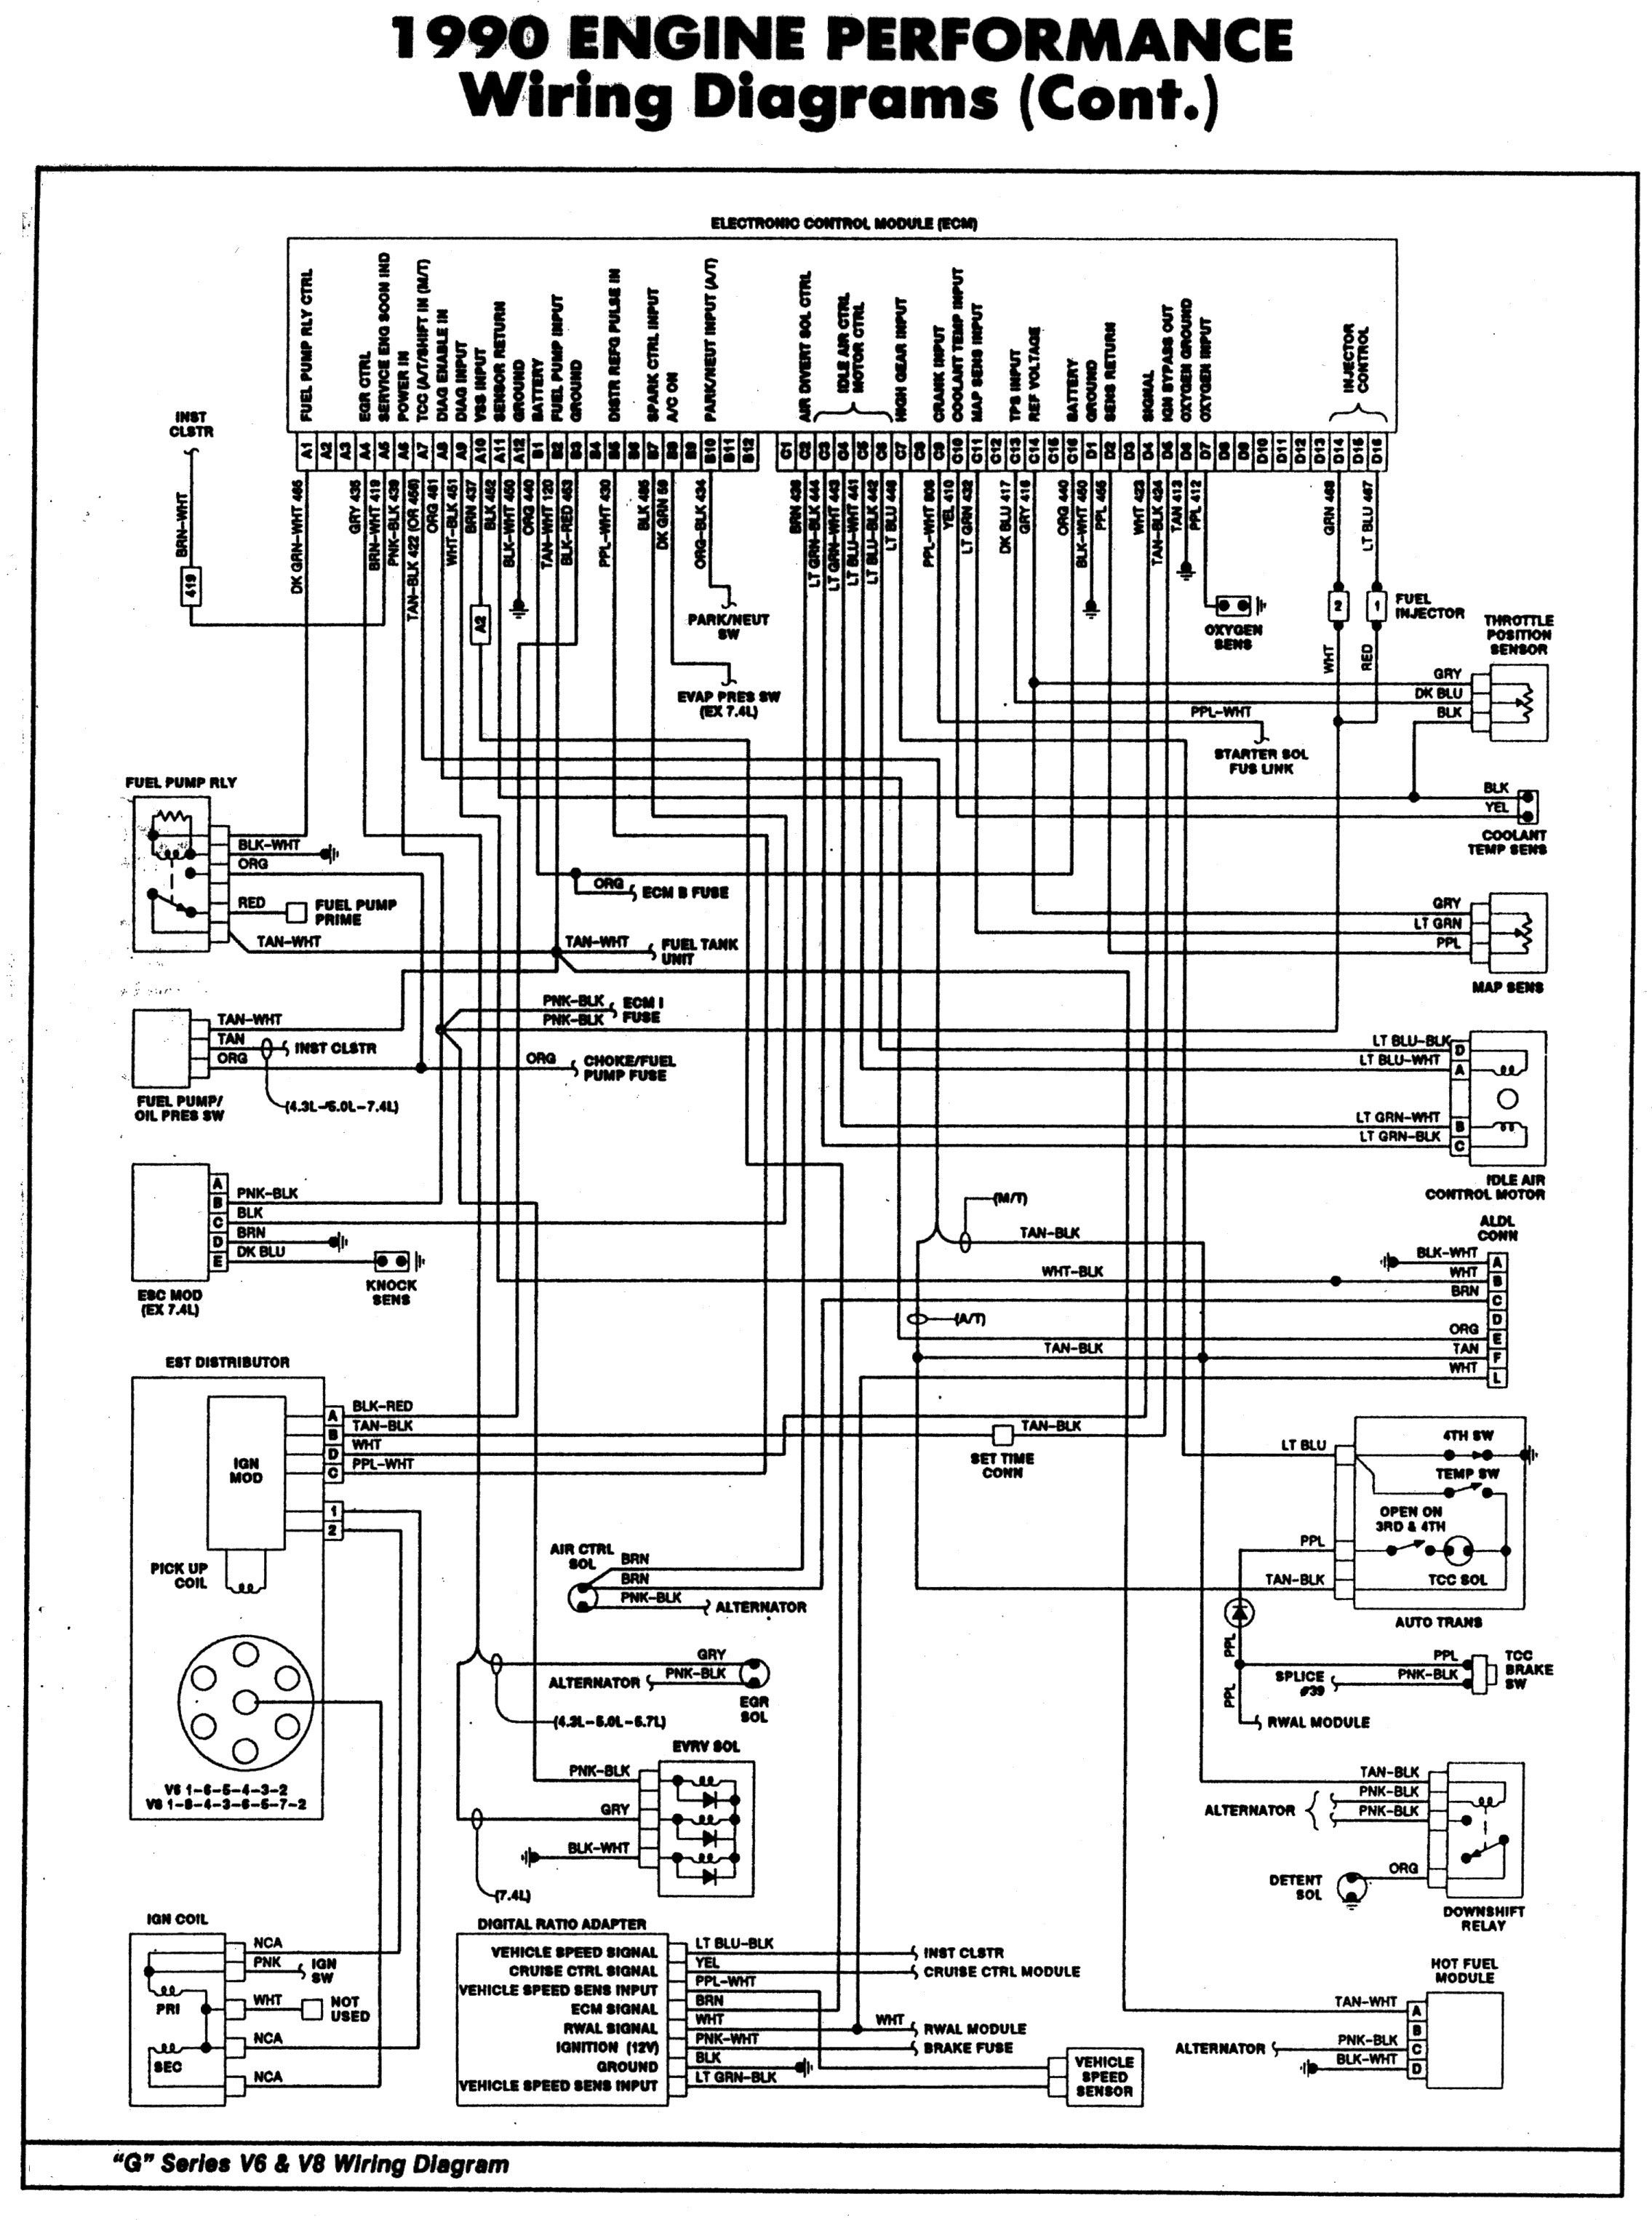 1995 Caprice Radio Wiring - Wiring Diagram Porsche 928 for Wiring Diagram  SchematicsWiring Diagram Schematics